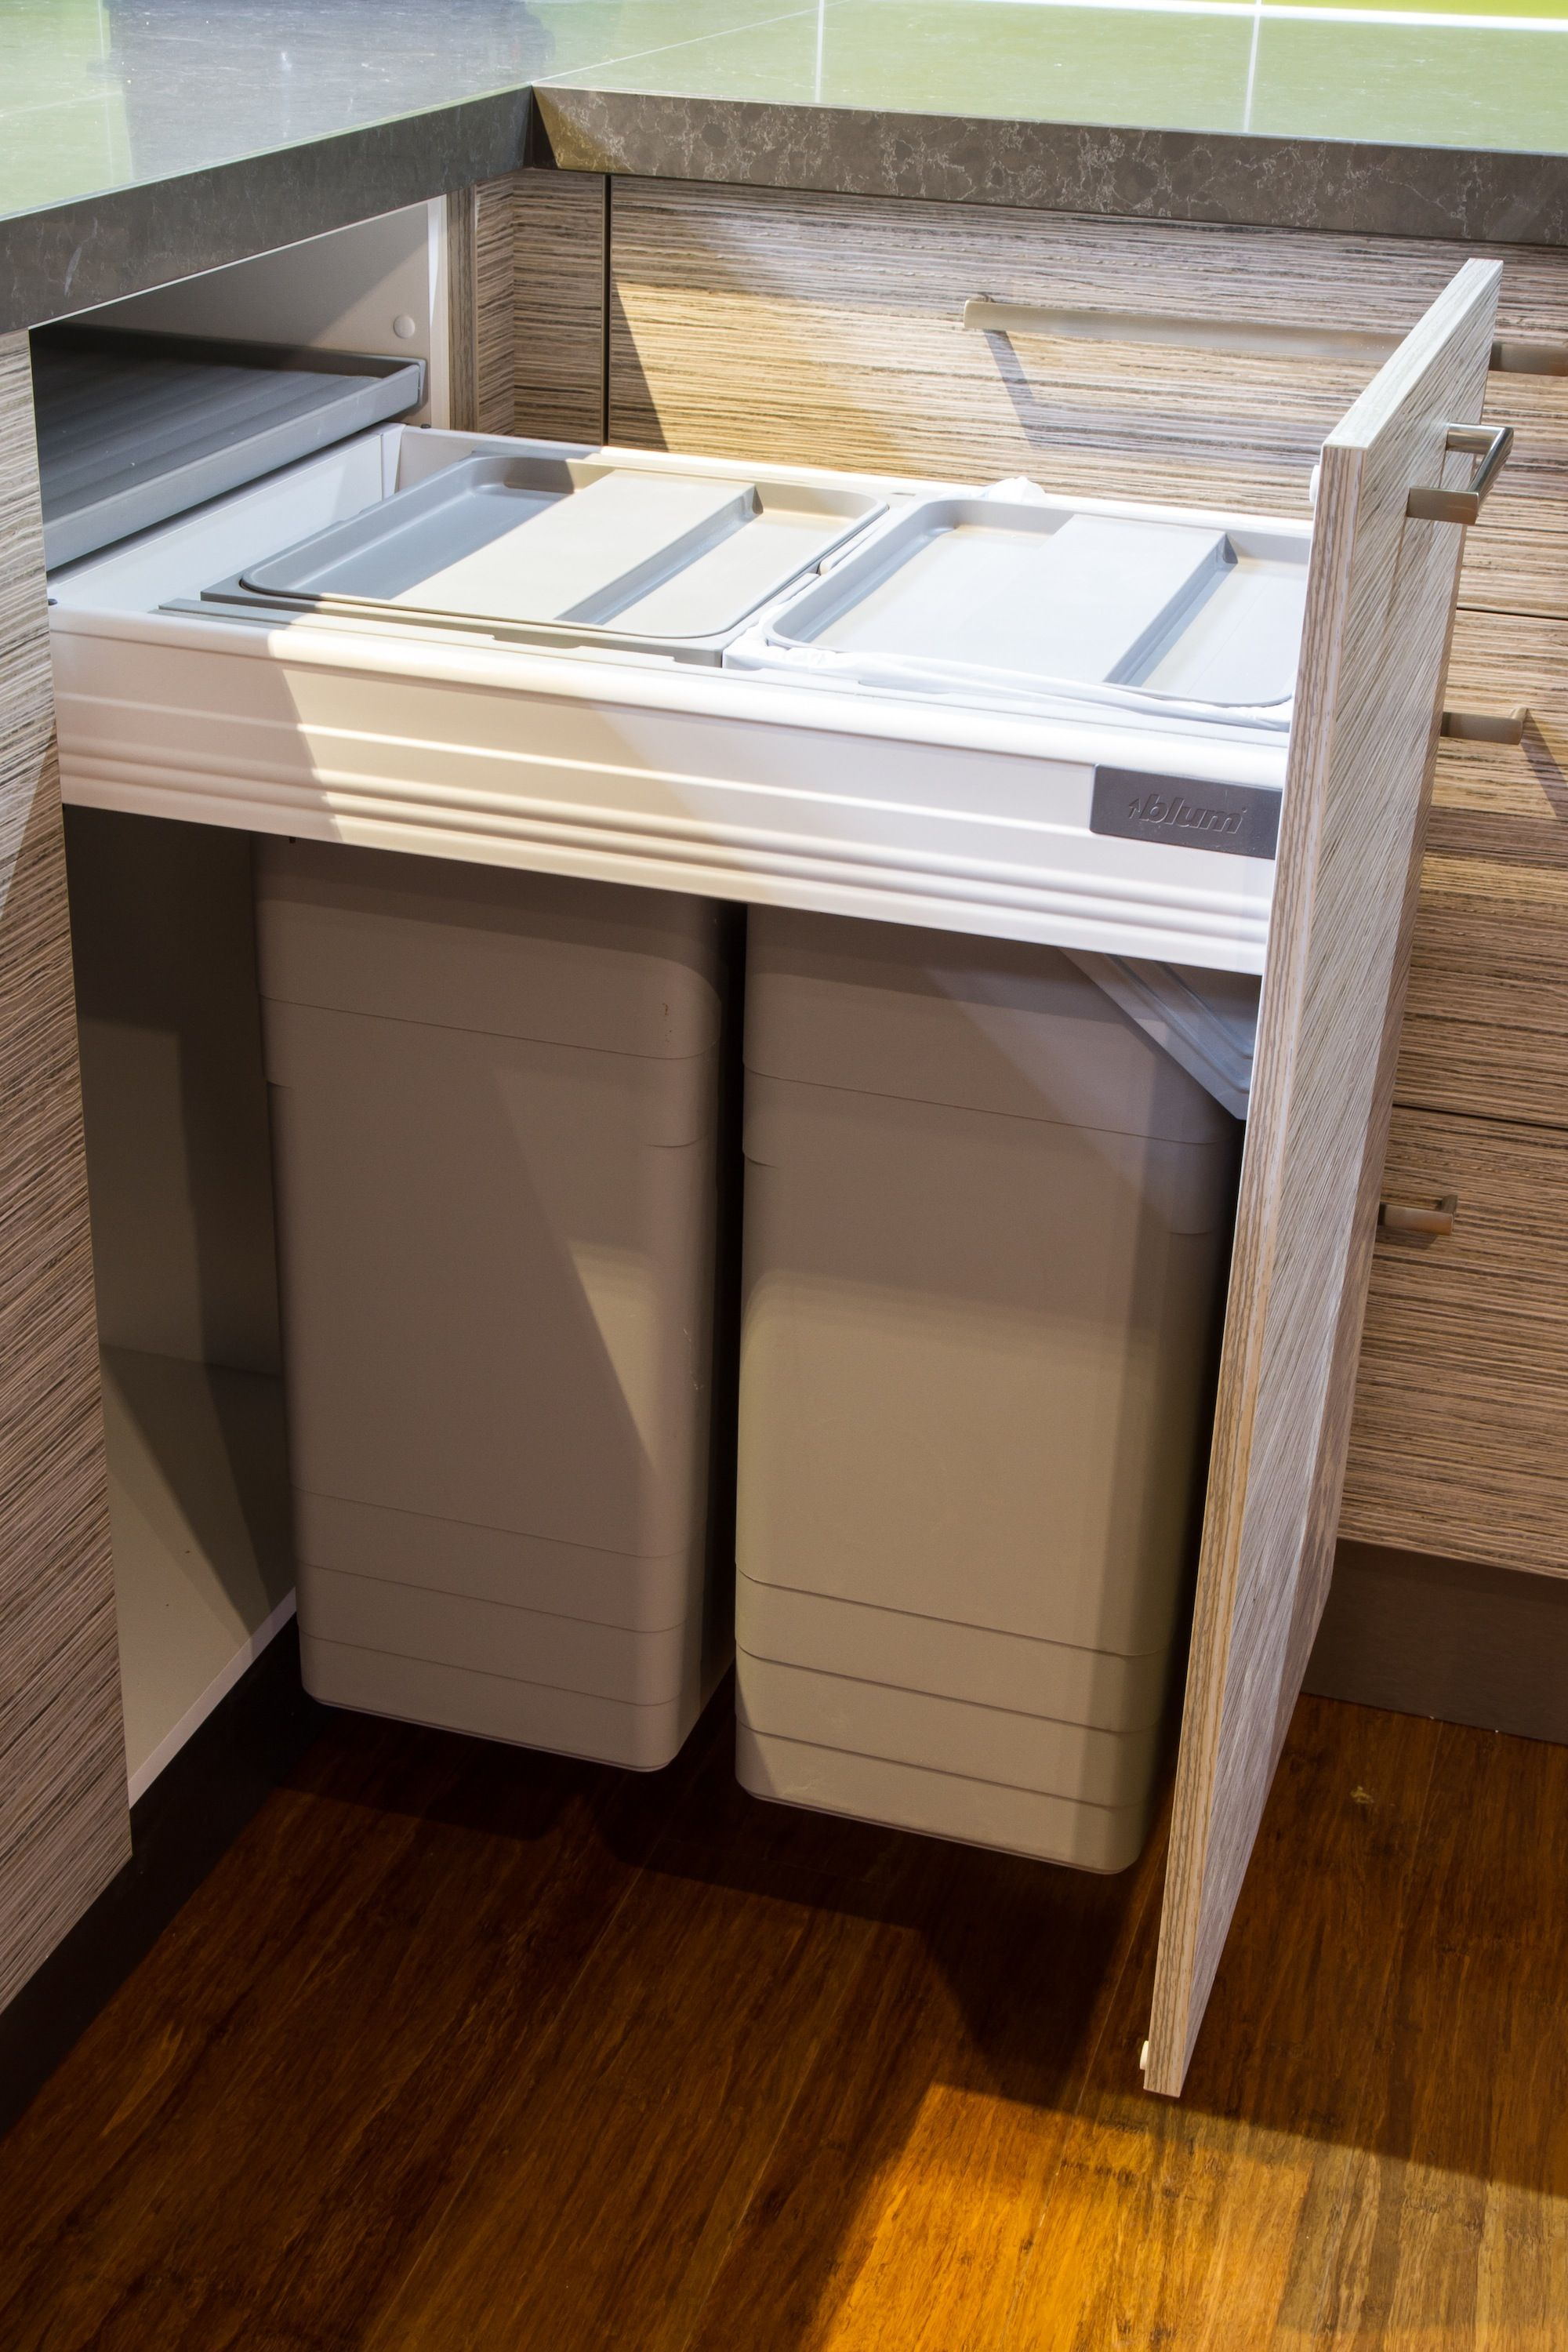 Superb Bin Drawer. Small Contemporary Kitchen. Hafele Bins. Blum Drawer Runner.  Www.